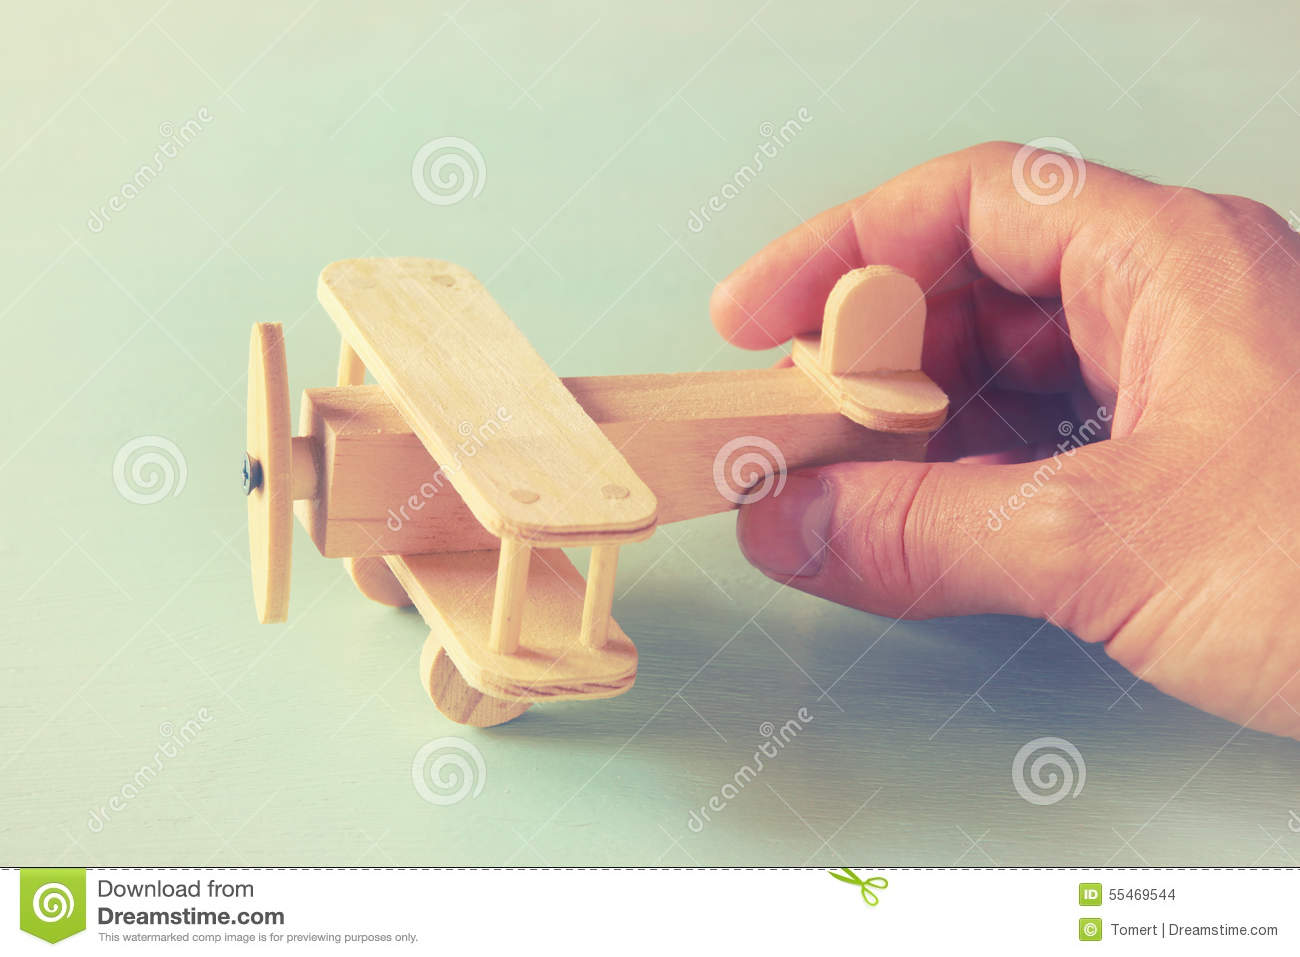 Close up photo of man s hand holding wooden toy airplane over wooden background. filtered image. aspiration and simplicity concept